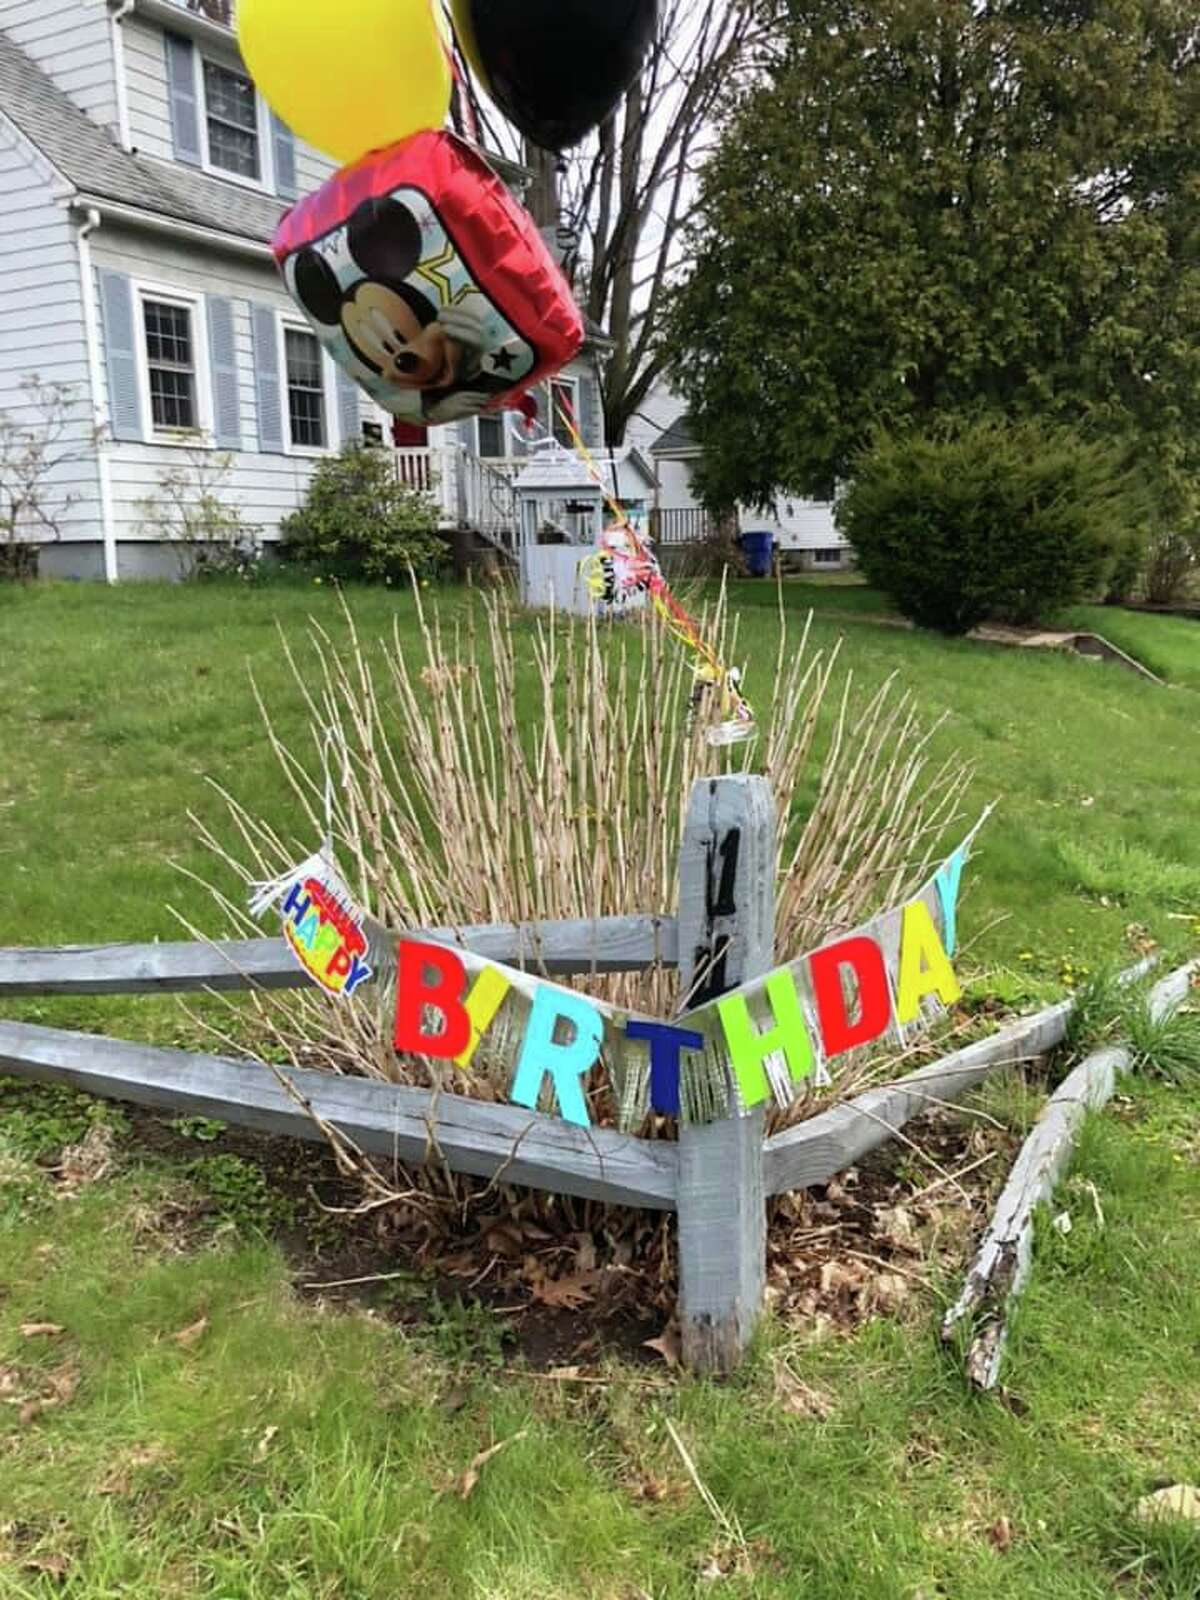 A birthday parade was held for two children in Torrington.